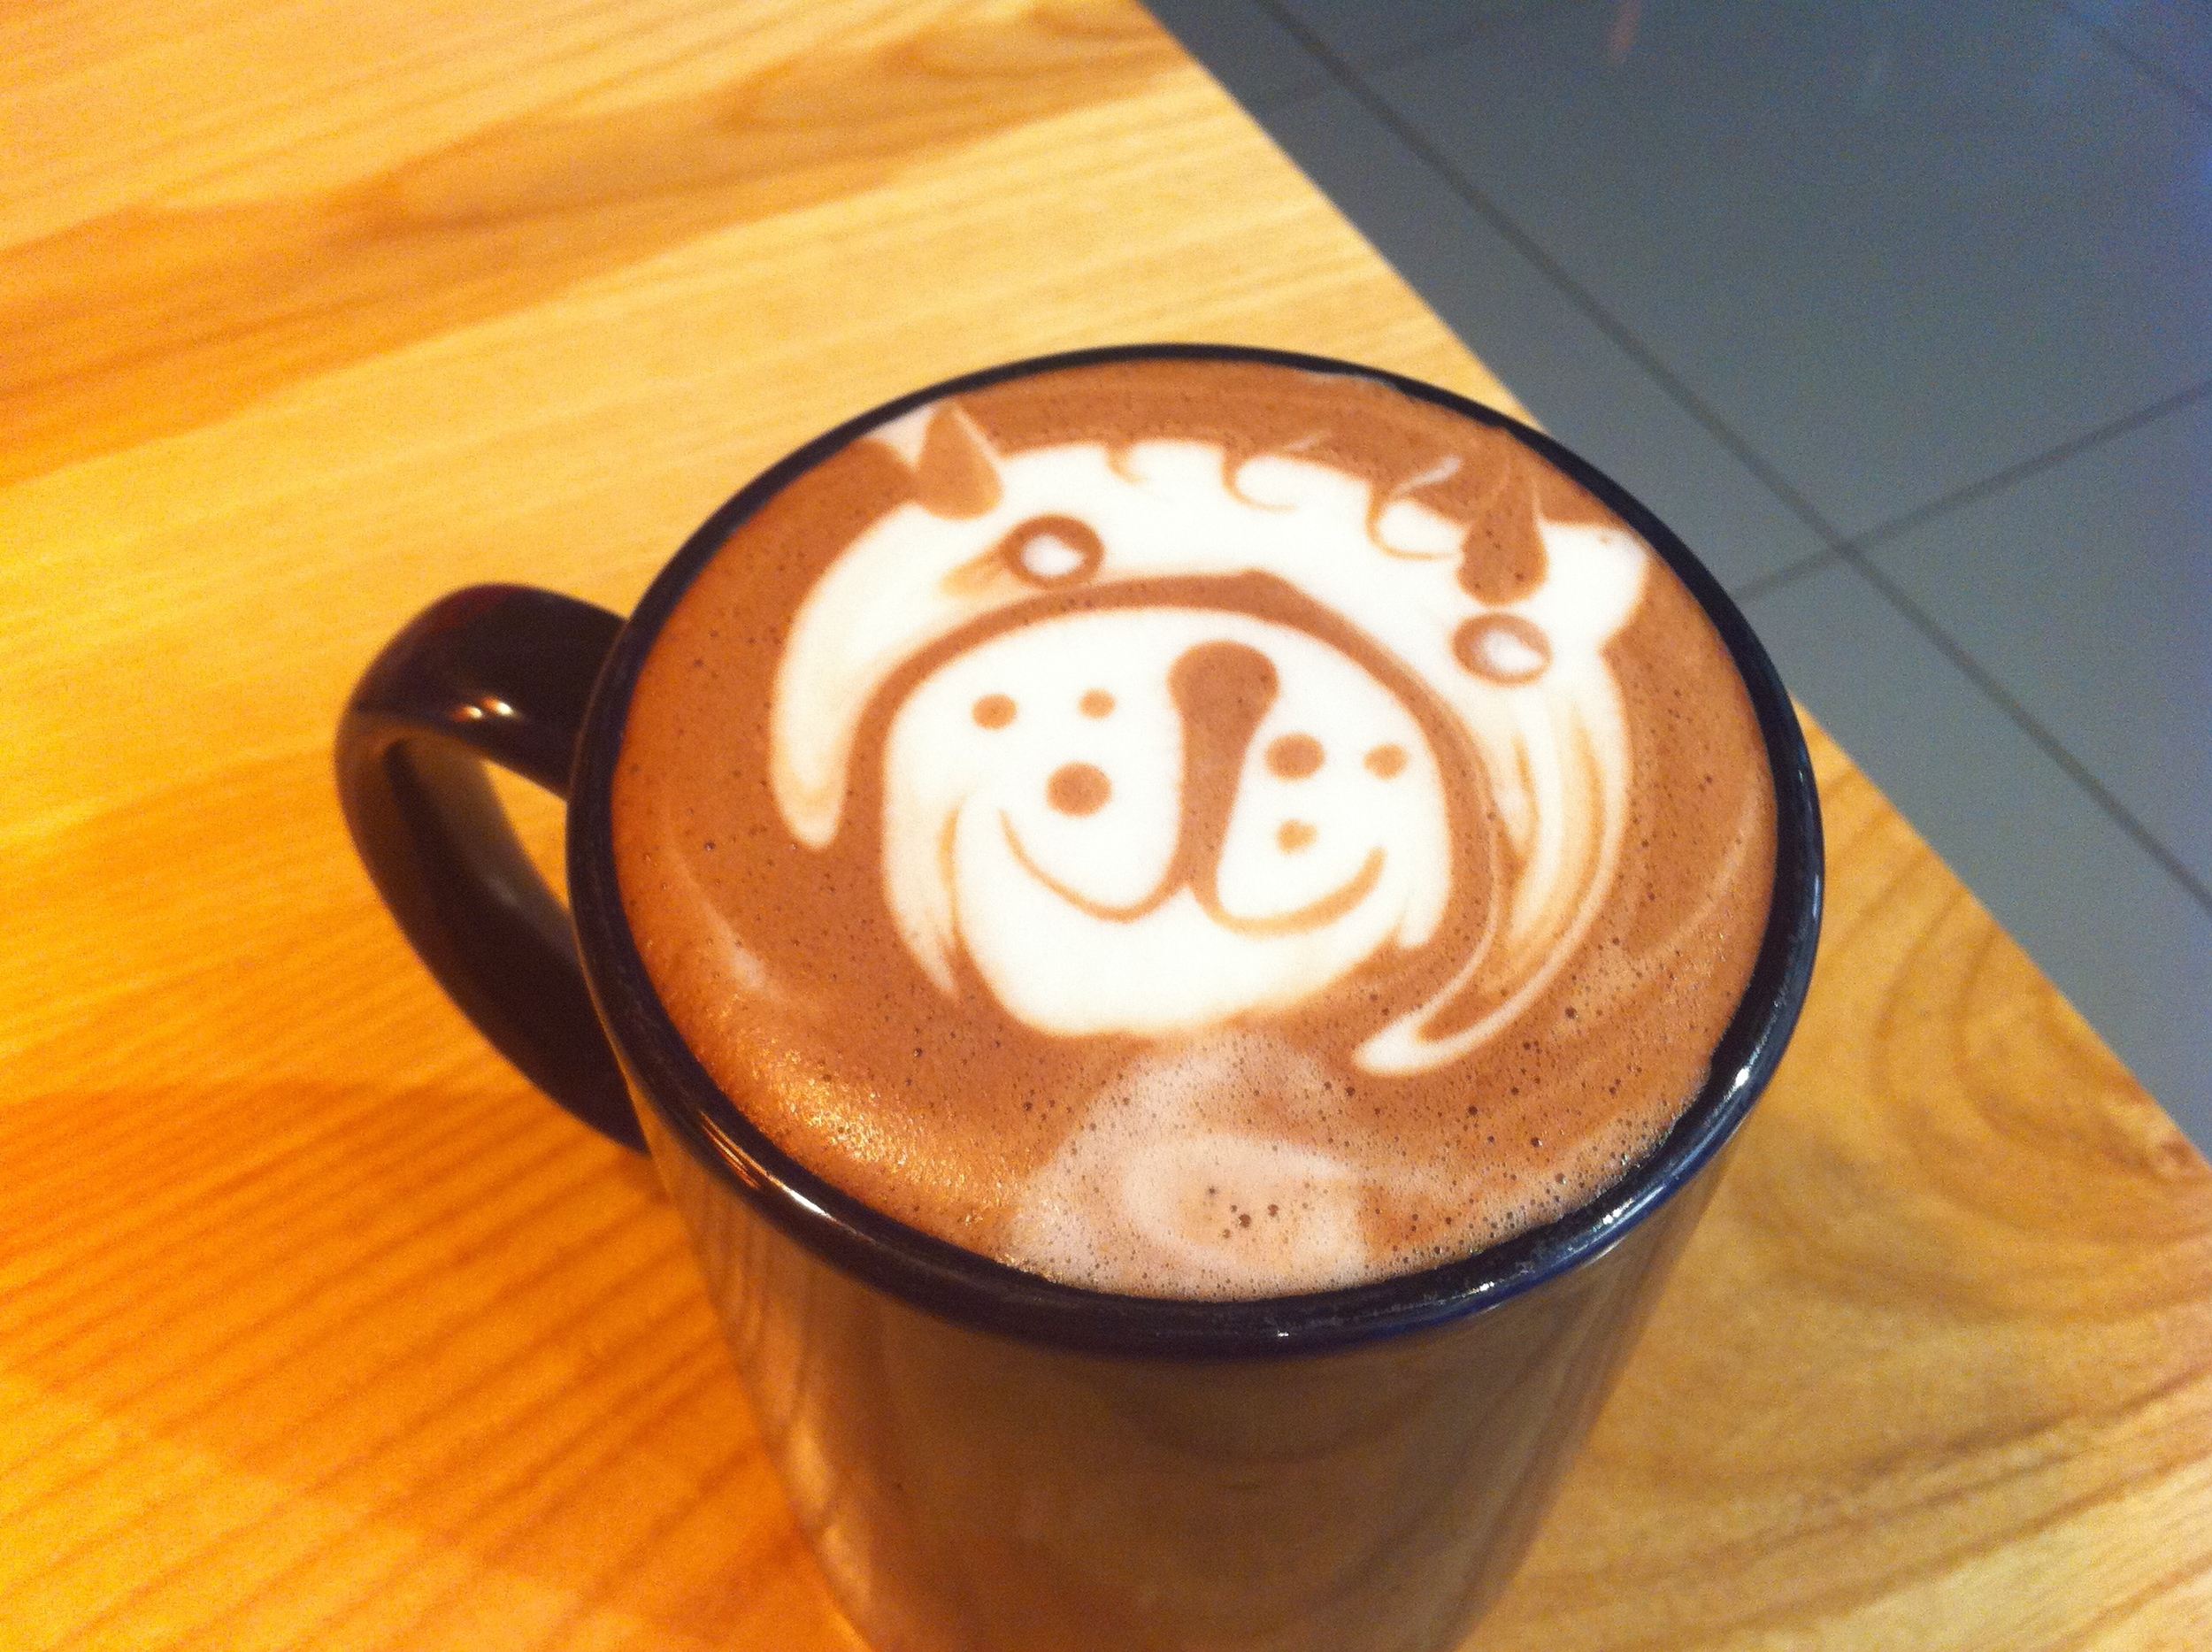 """My early morning heroes, Patrick, Brian and Dave, the amazing barista's at my local coffee spot, serve me up an early morning """"  Lioness""""  . Their artistry and ever cheerful mood always gets my day started on just the right note. Purrrrr!"""